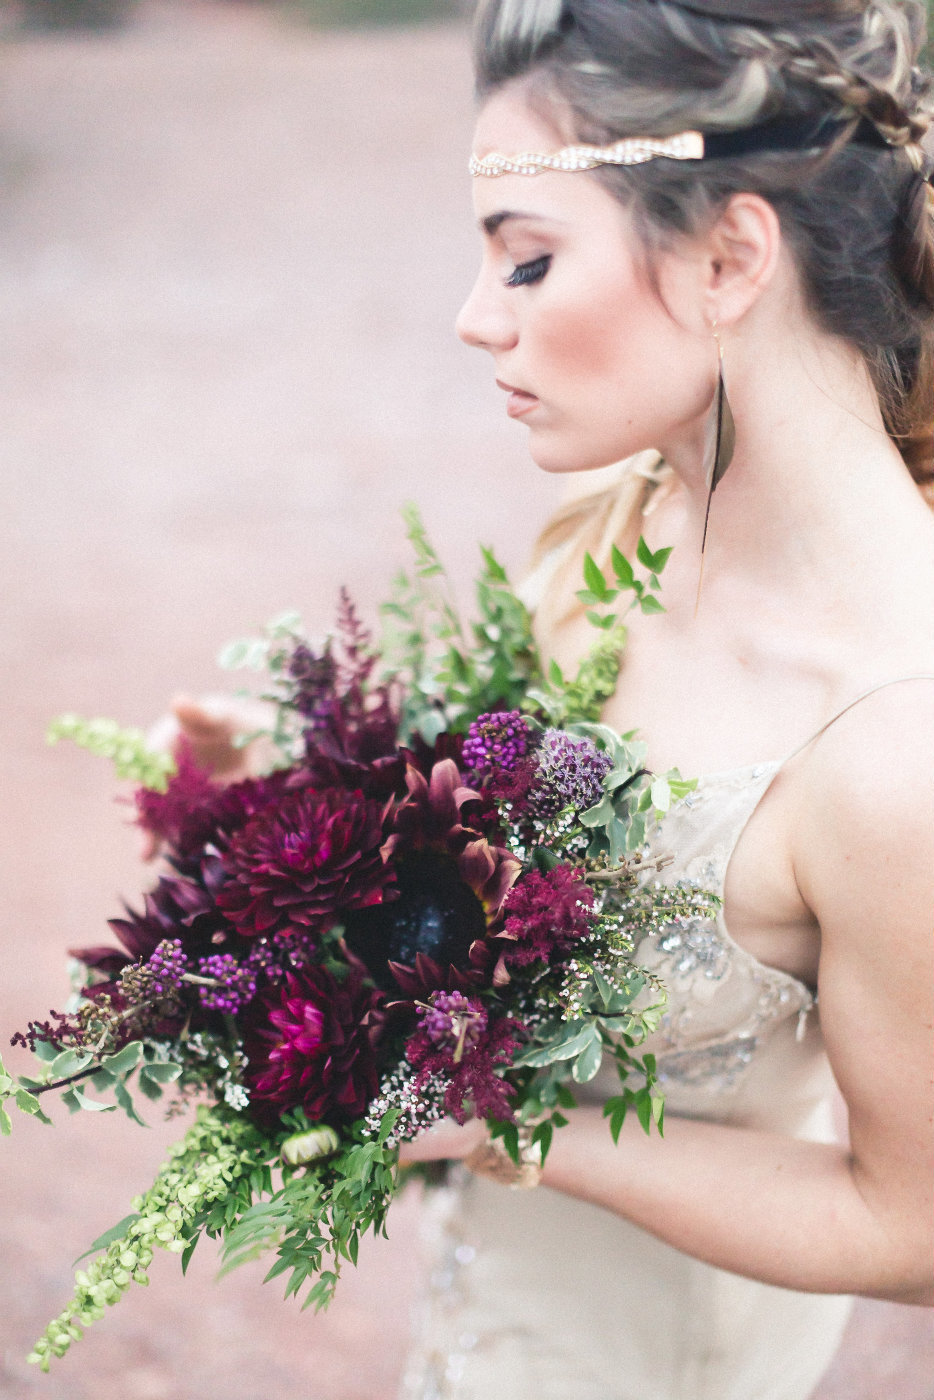 arizona_photography___boho_styled_shoot___united_2015___diblasio_photo_631